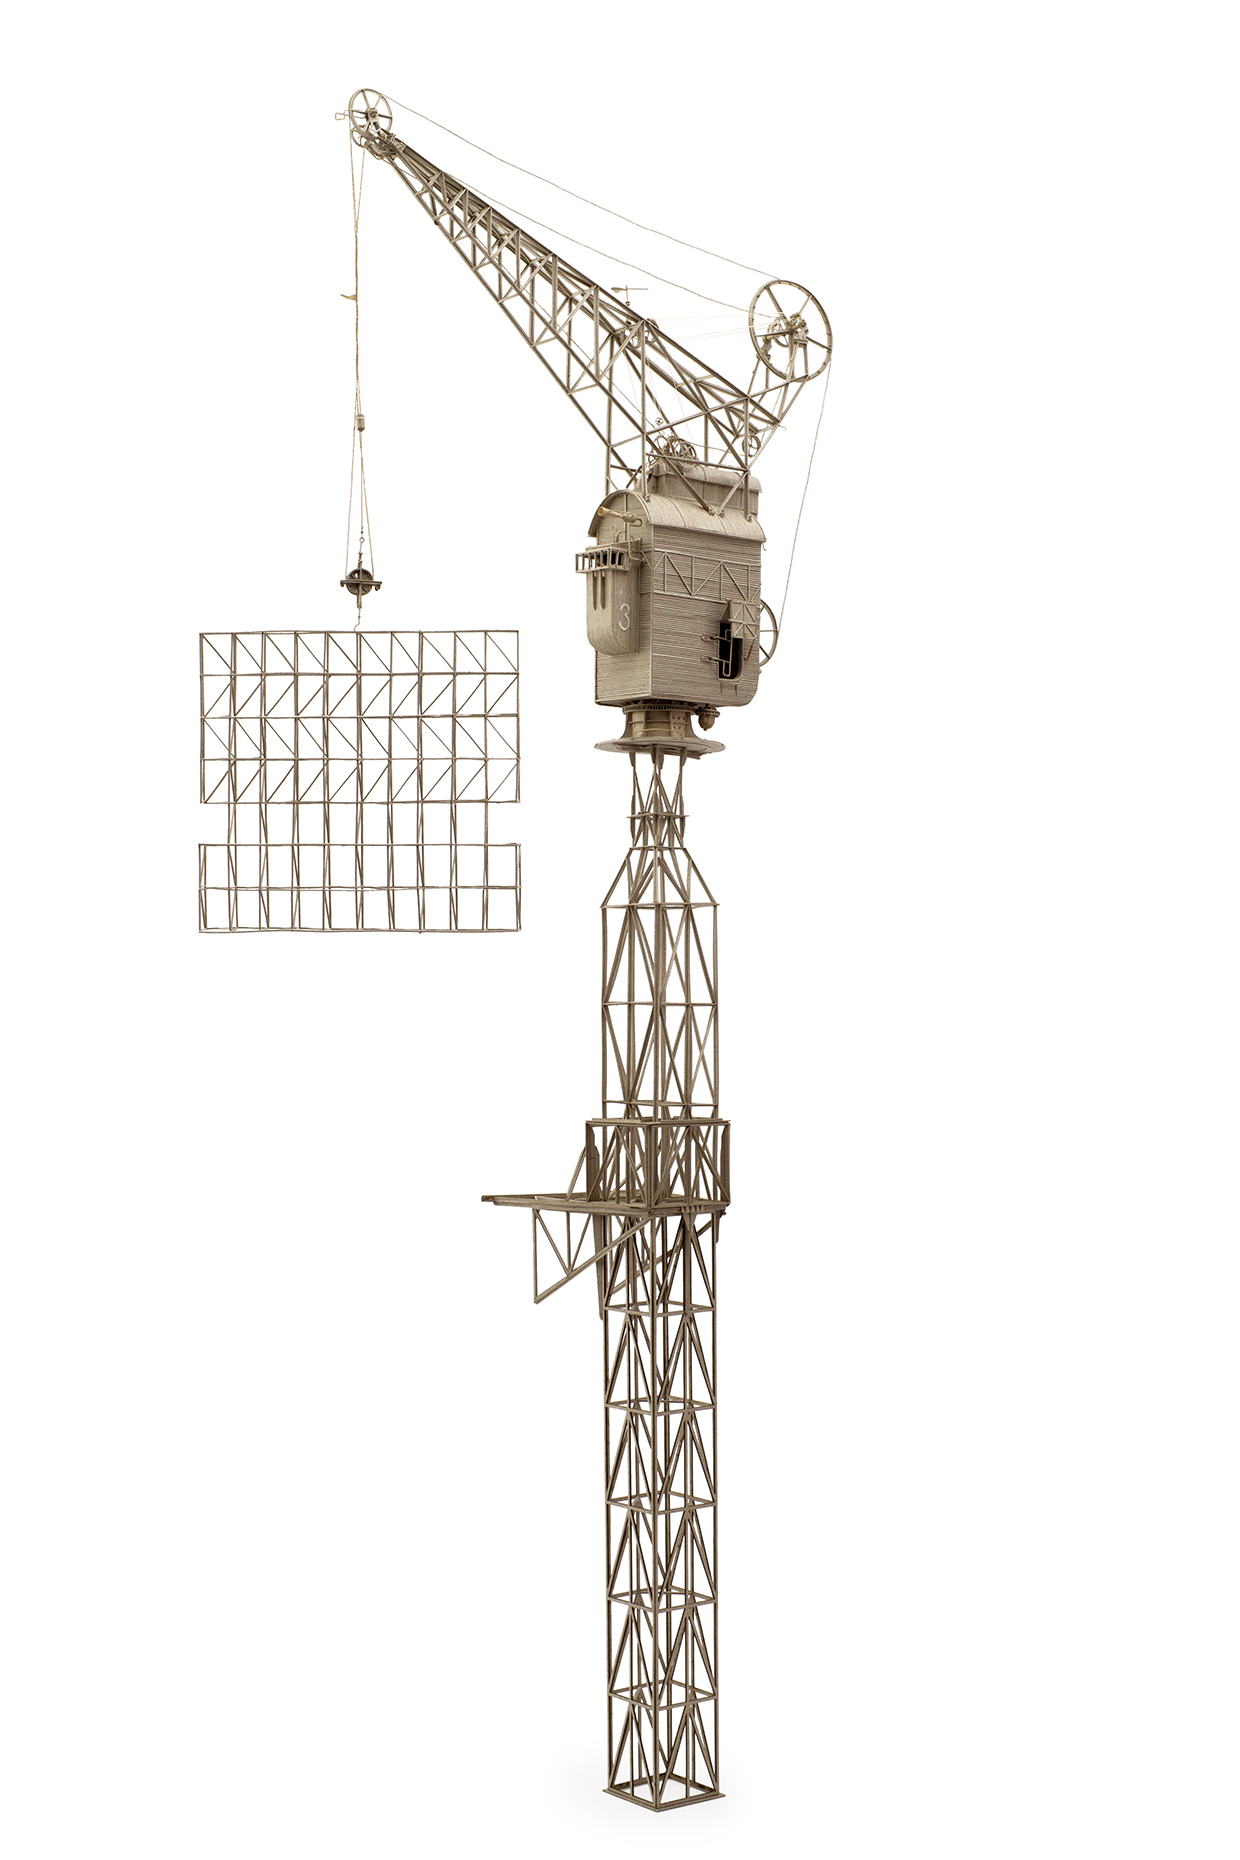 DanielAgdag, The Crane, 2019 <br/> Cardboard and trace paper, Variable dimensions